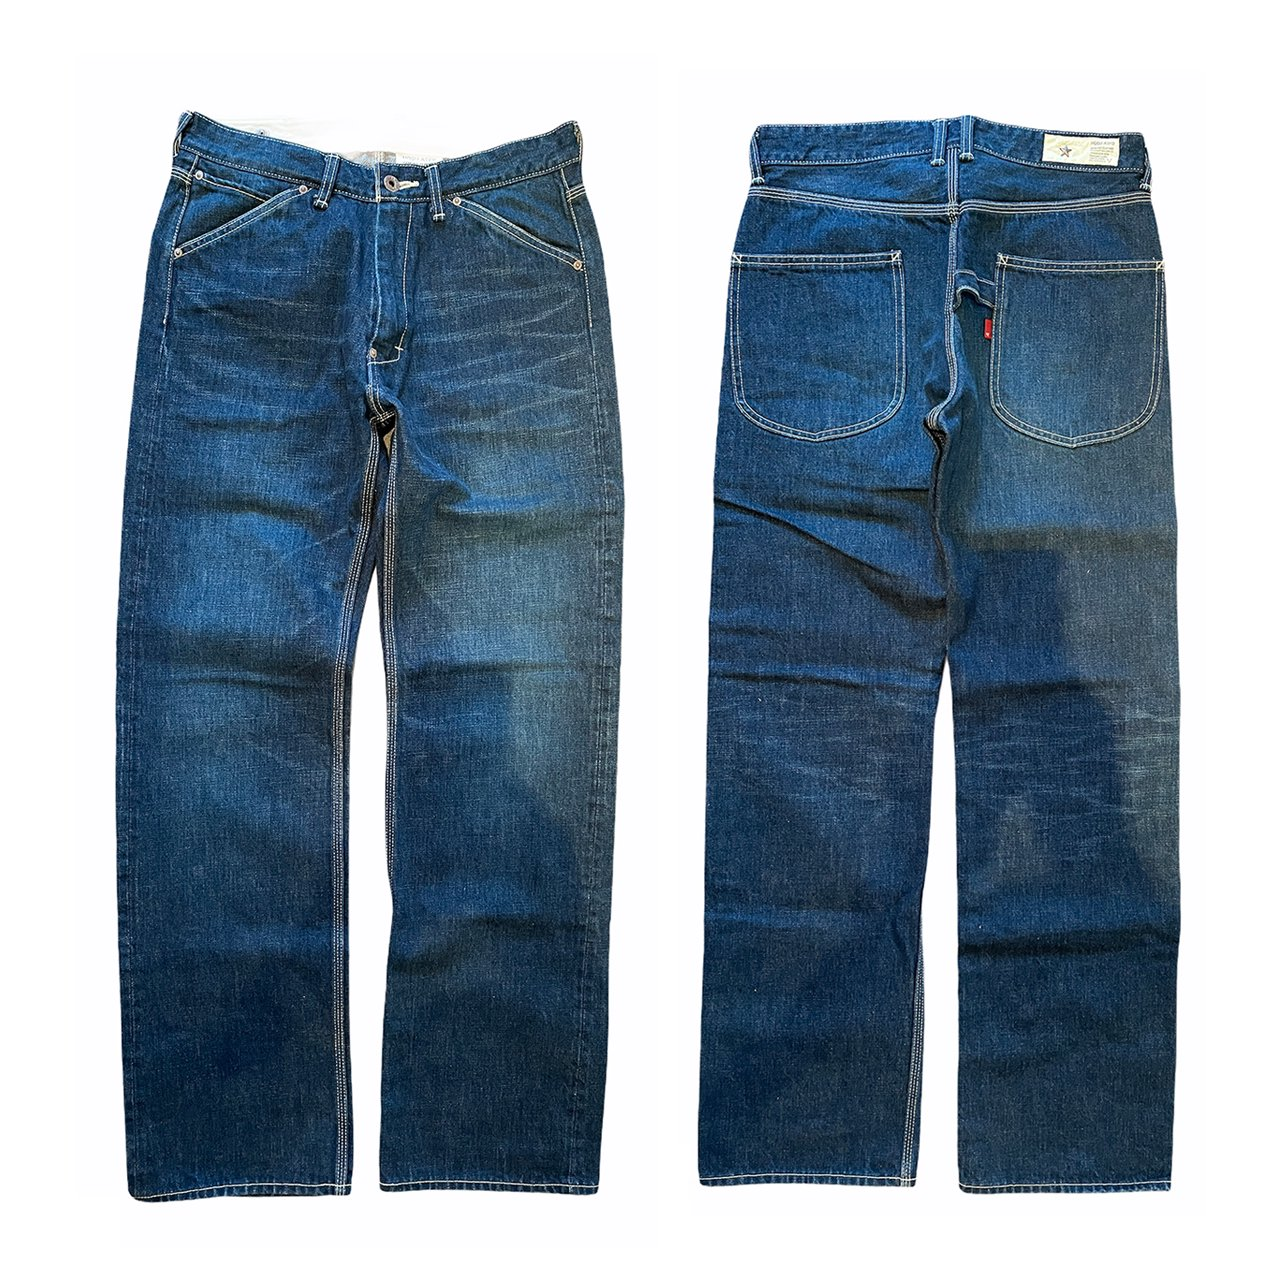 HOSU 332 PAINTER DENIM PANTS USED PROCESSING(4 YEARS)